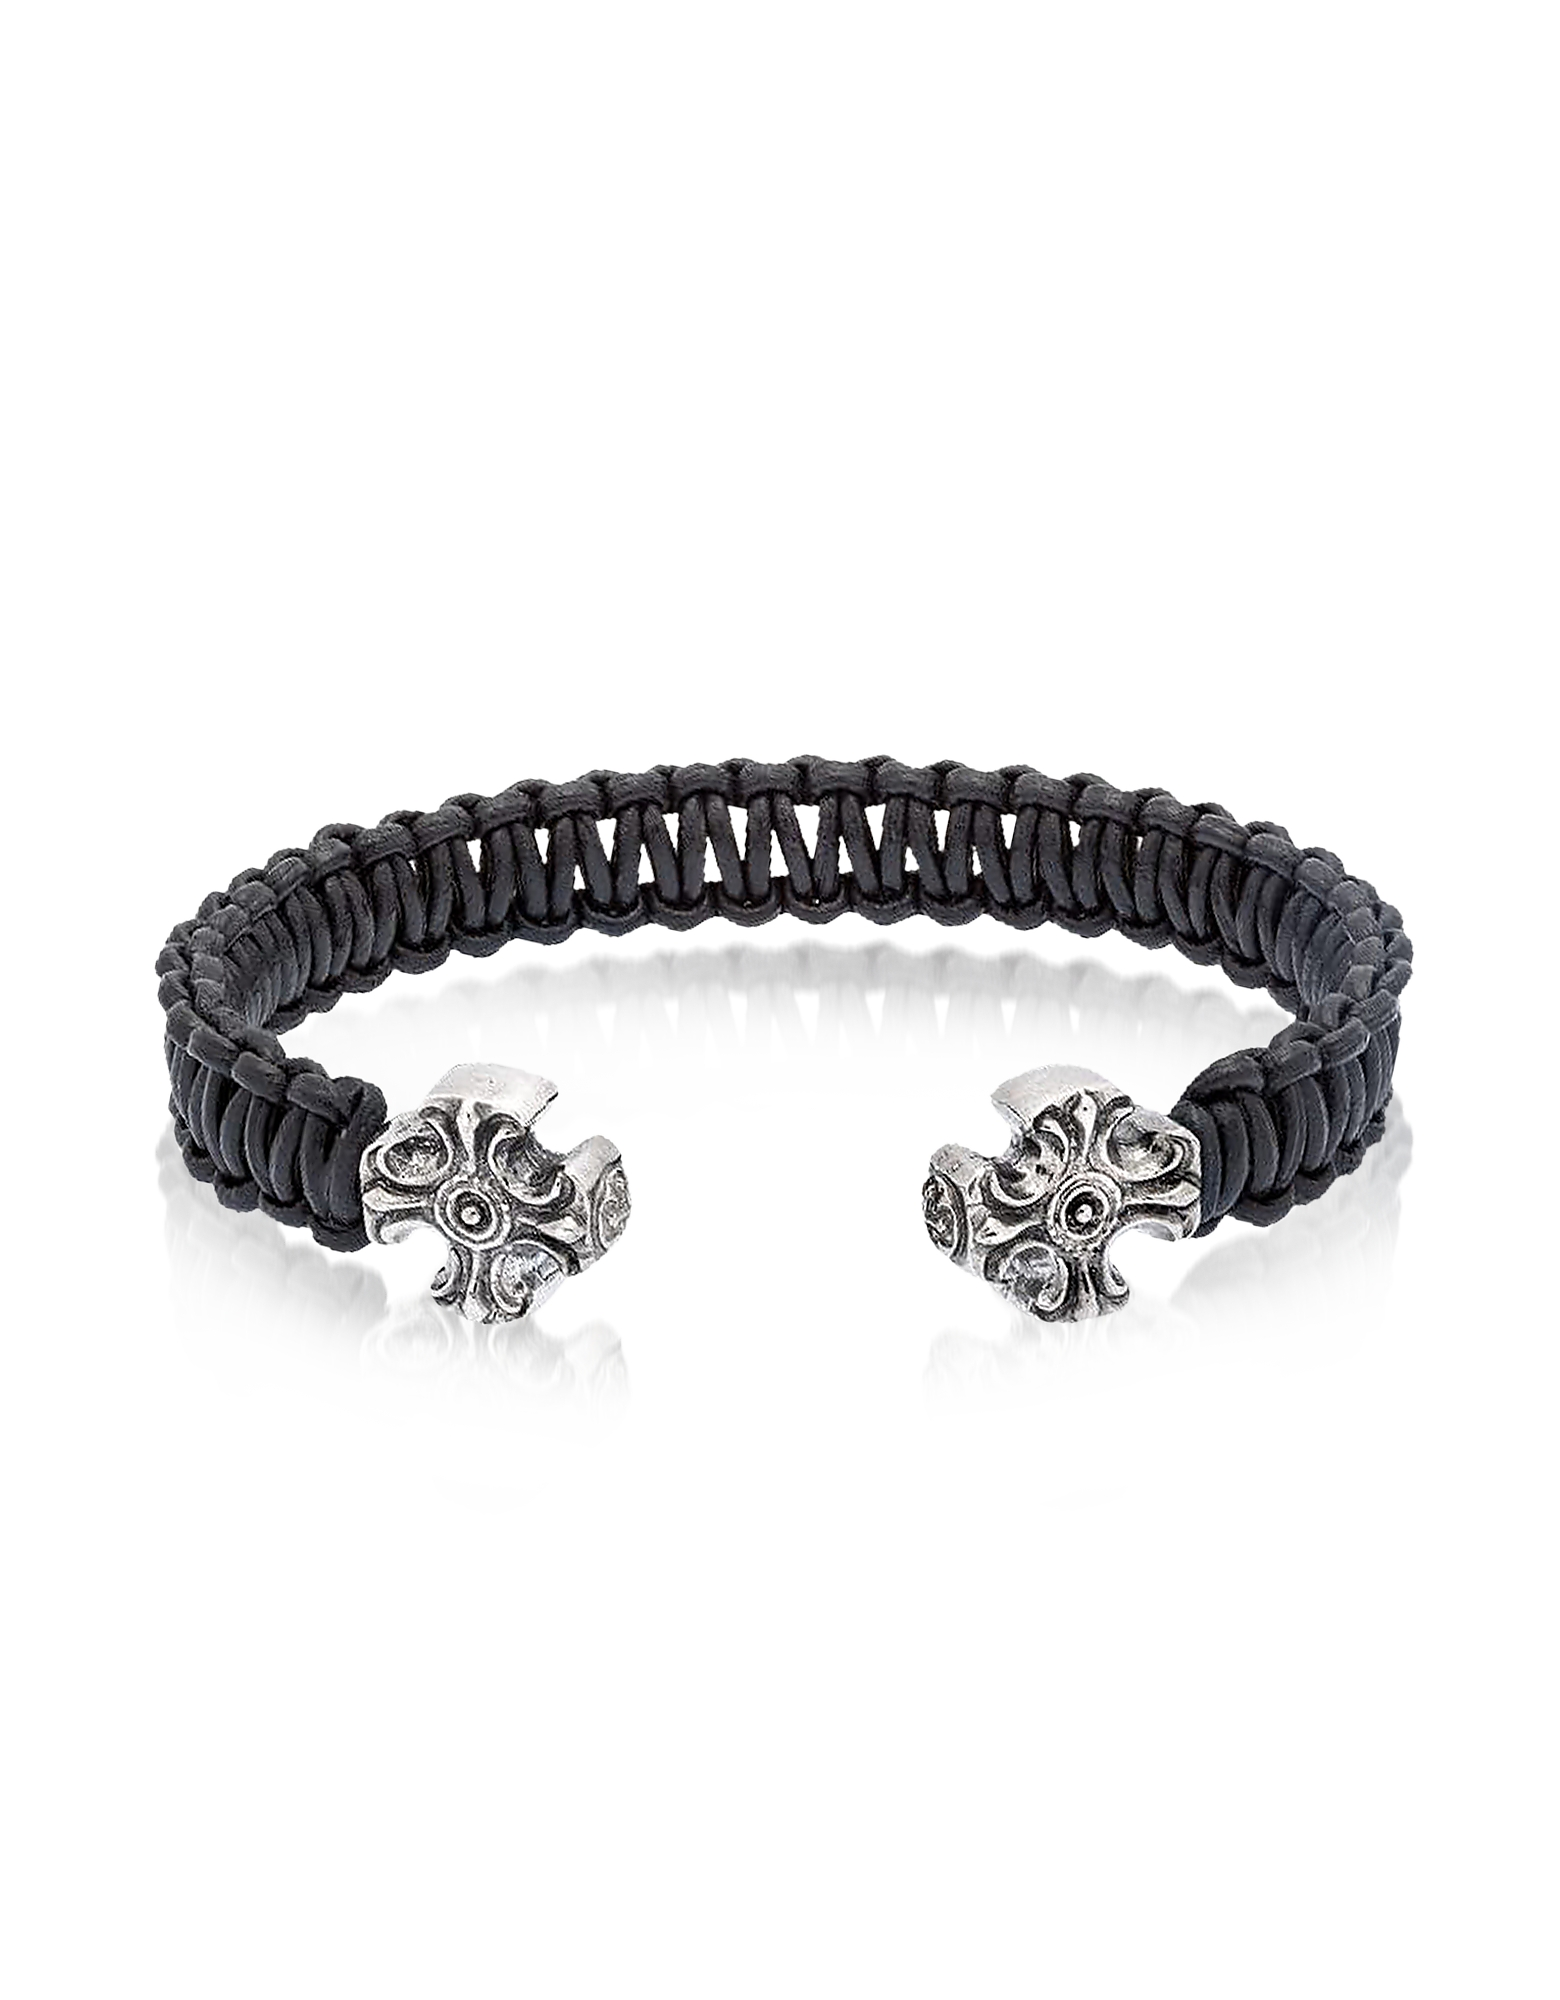 Be Unique Men's Bracelets, Gothic Leather Bracelet